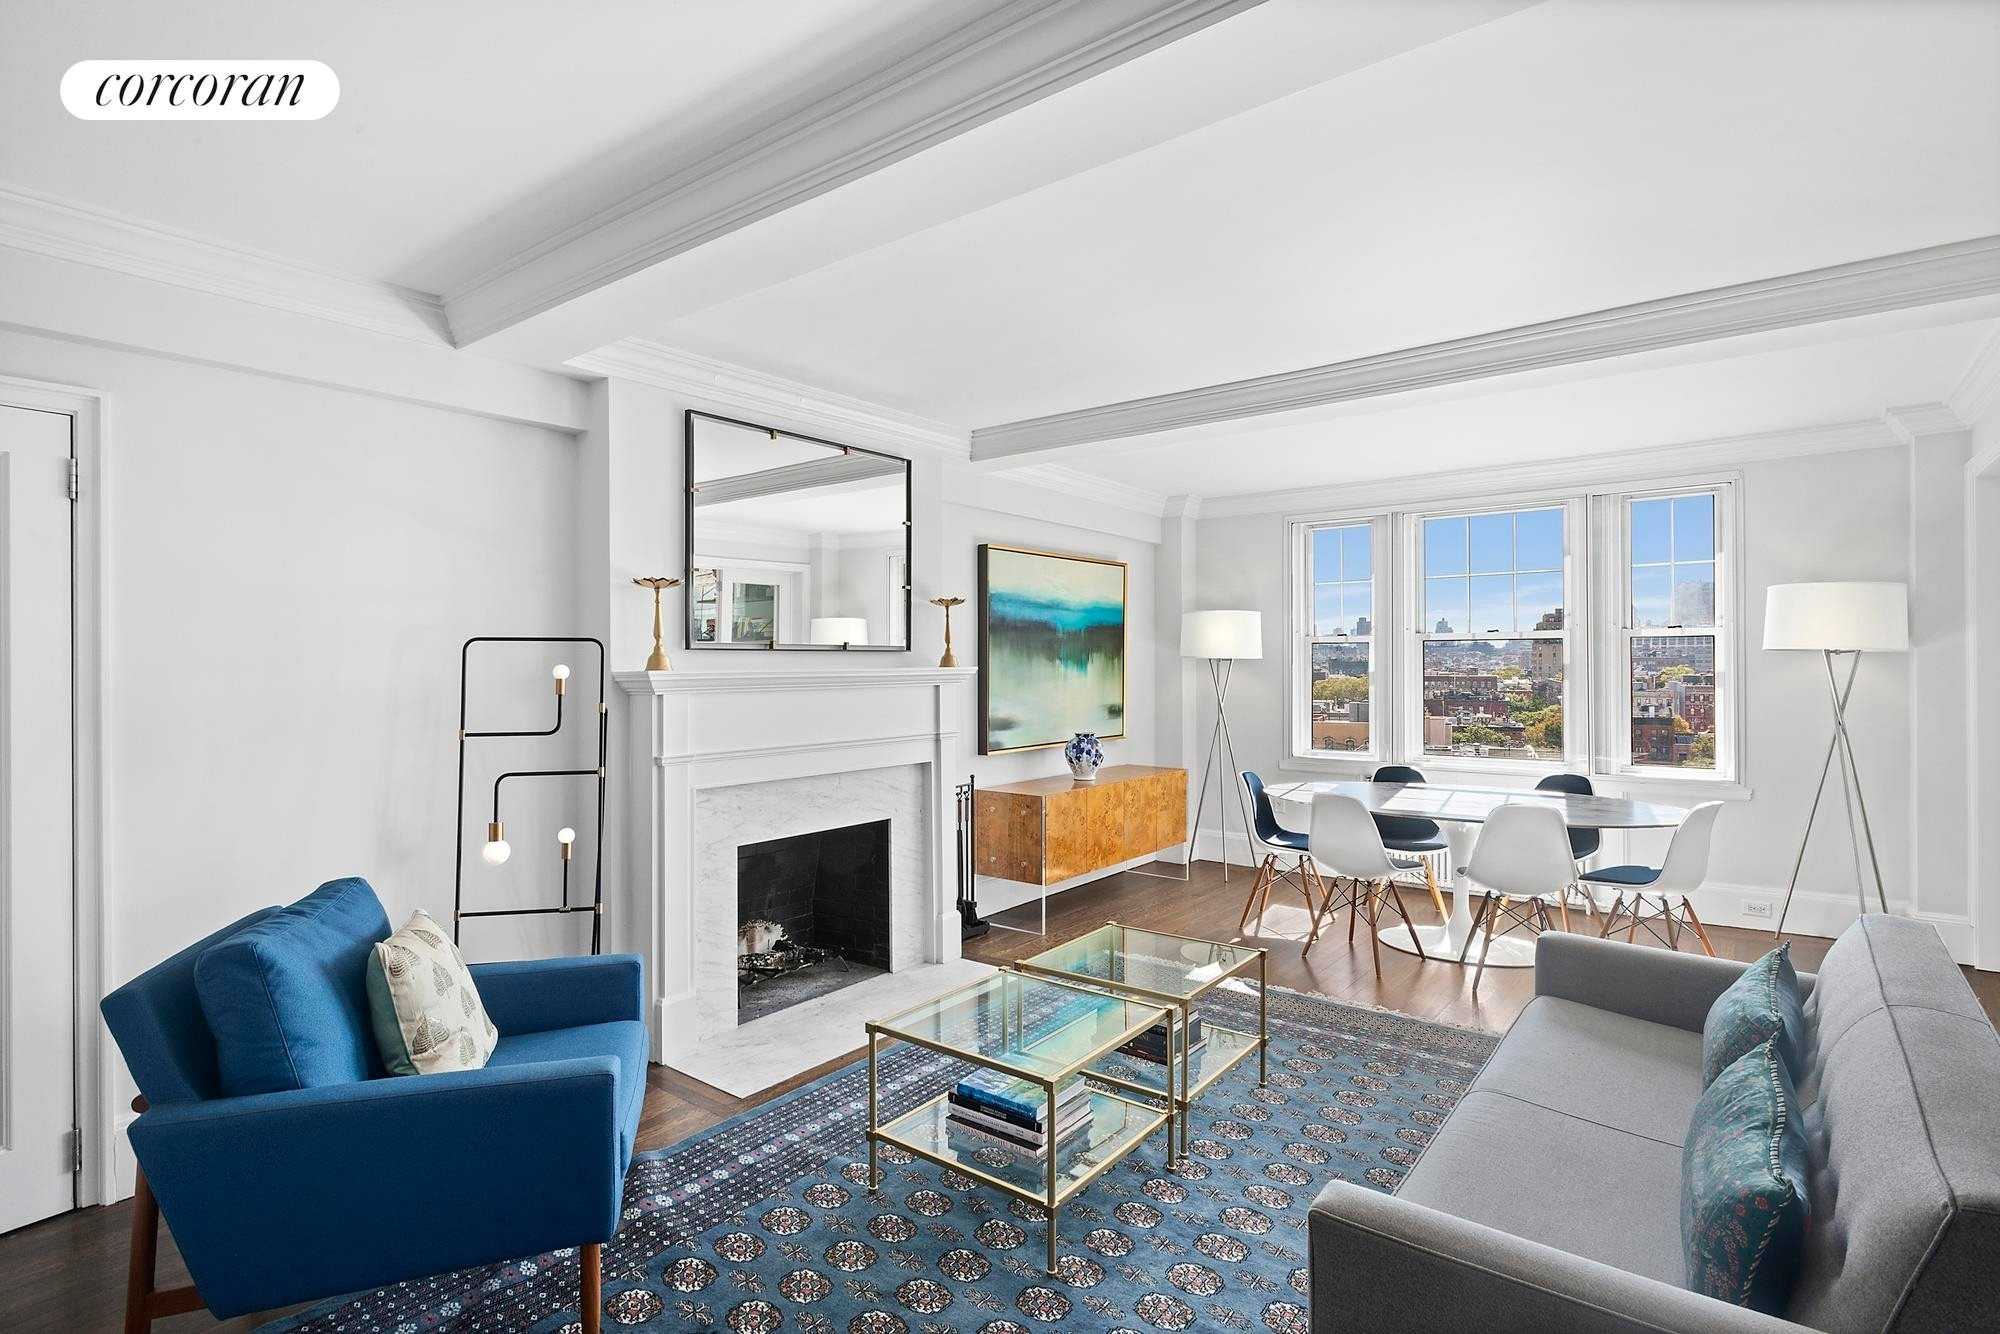 Property at 299 W. 12 CORP., 299 West 12th St, 11D West Village, New York, NY 10014